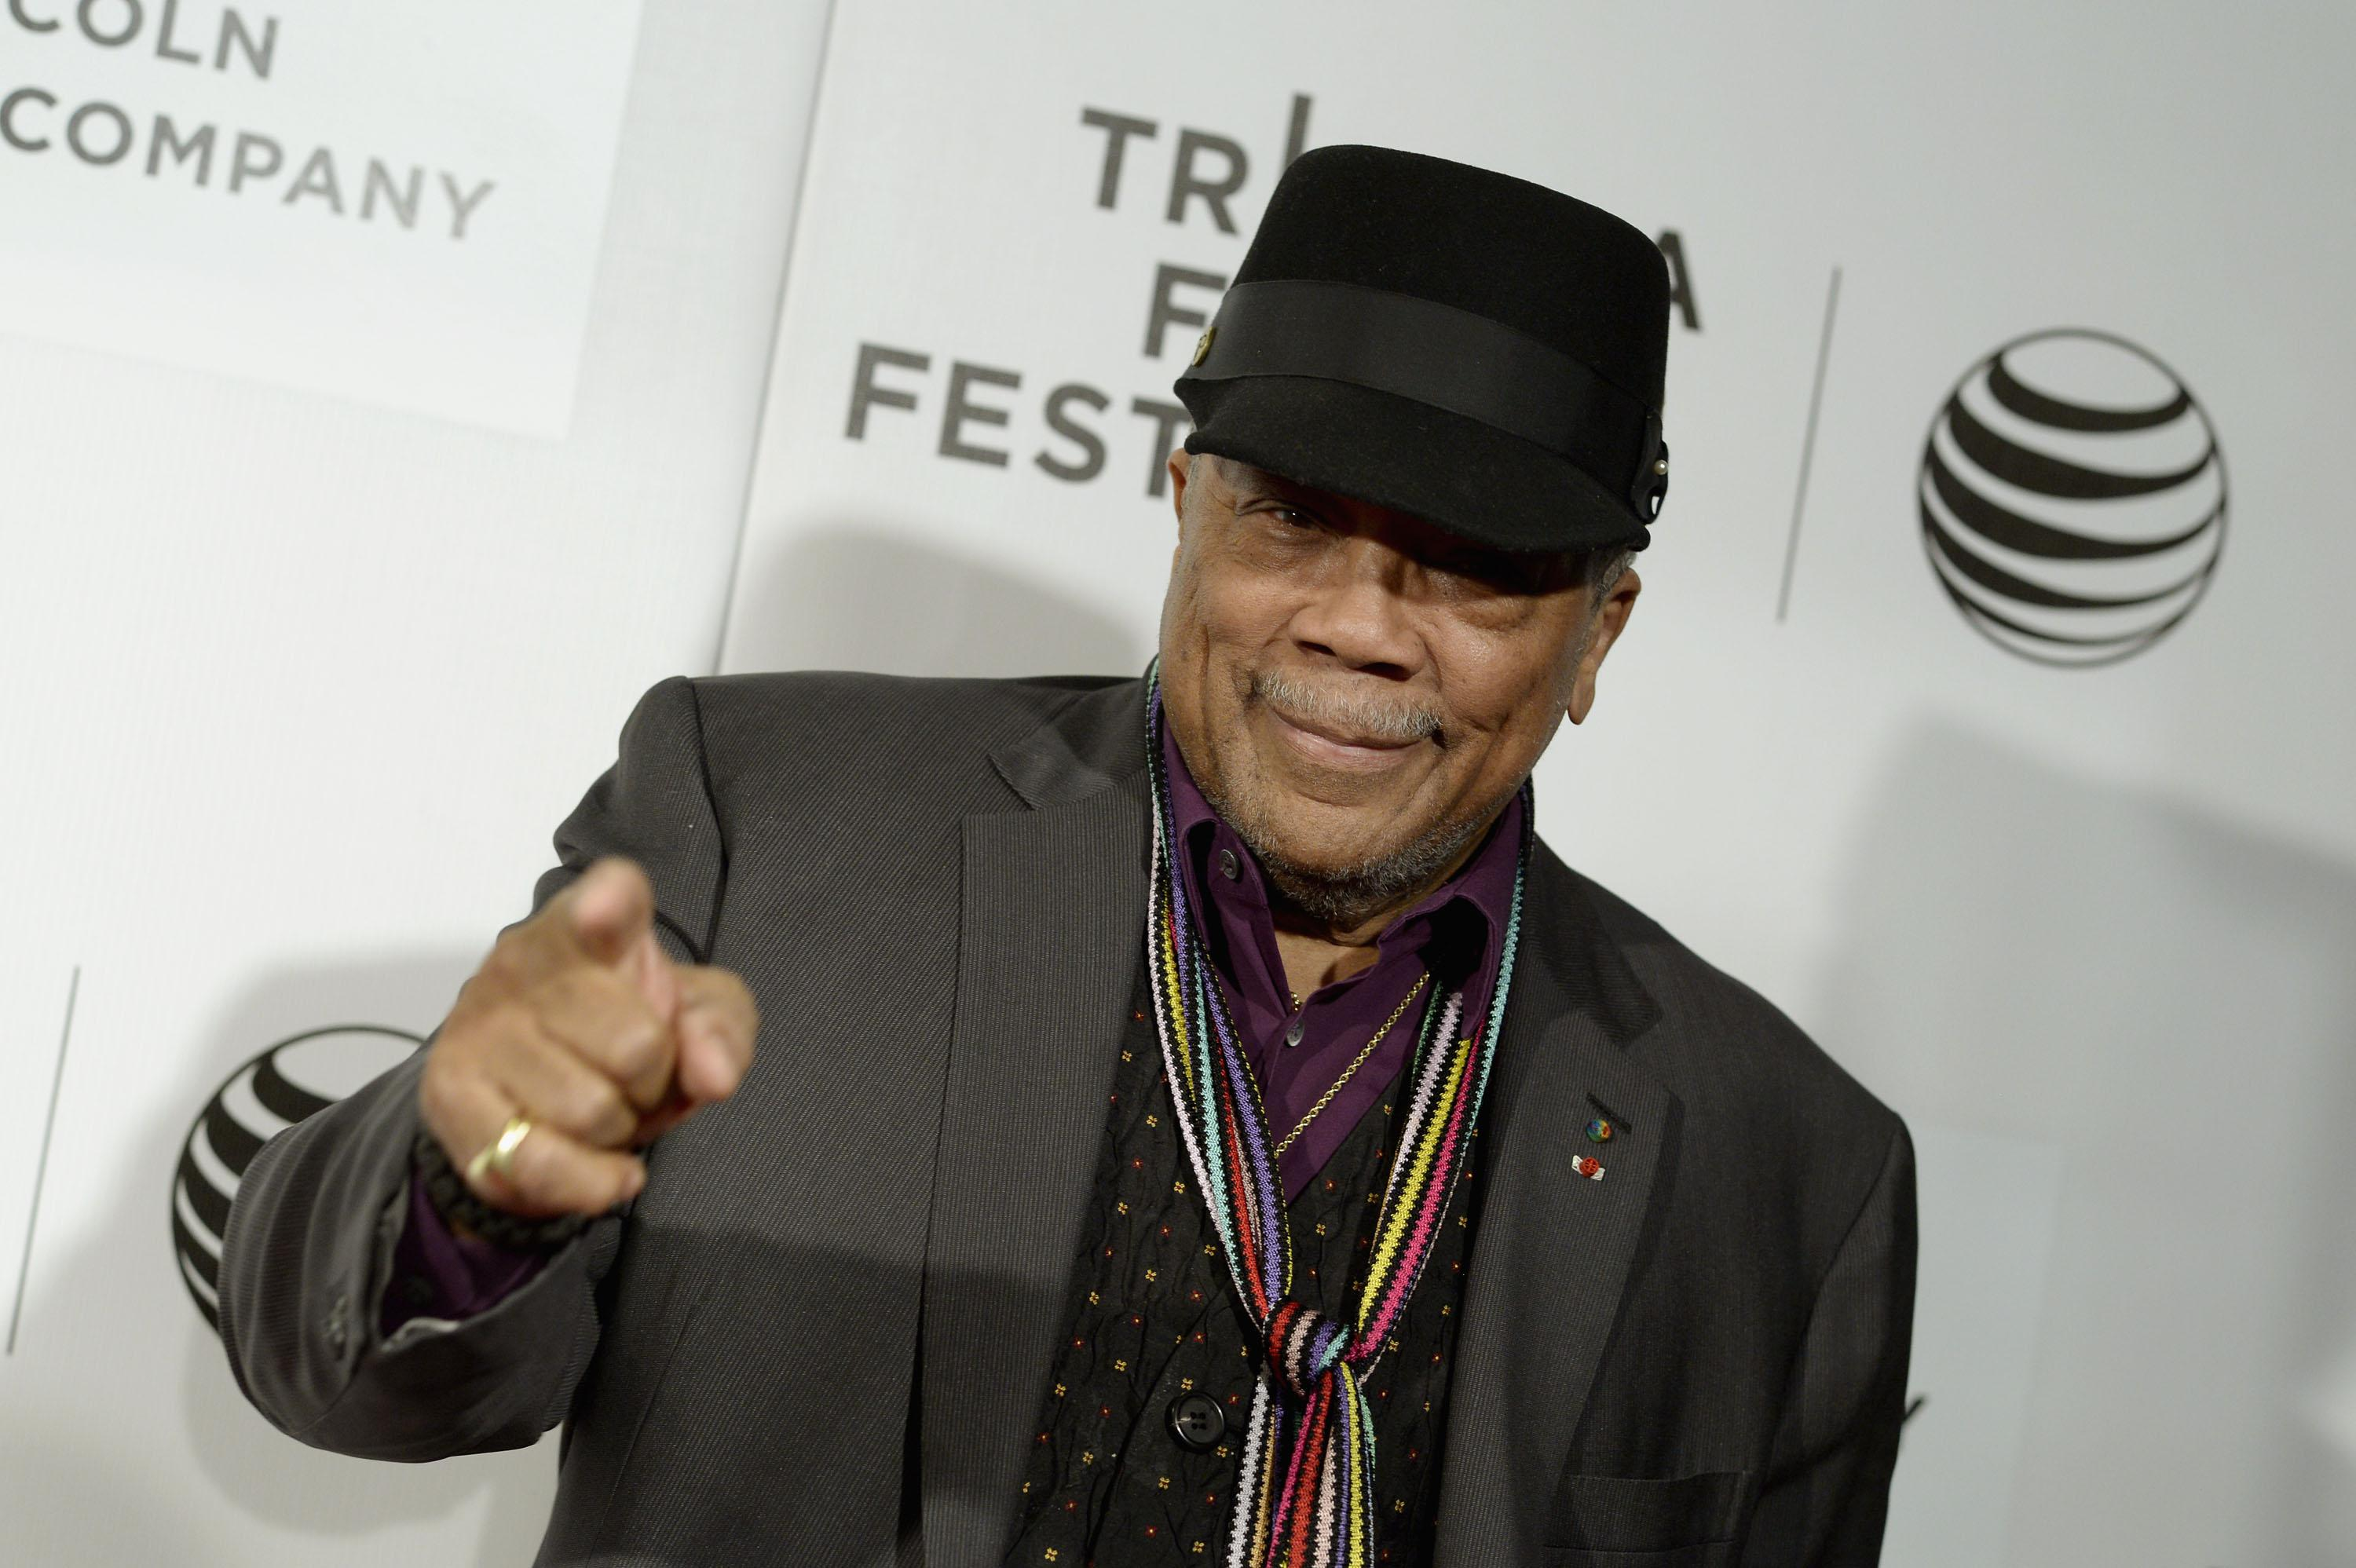 NEW YORK, NY - APRIL 19:  Producer Quincey Jones attends the 'Keep on Keepin' On' Premiere during the 2014 Tribeca Film Festival at BMCC Tribeca PAC on April 19, 2014 in New York City.  (Photo by Dave Kotinsky/Getty Images for the 2014 Tribeca Film Festival)